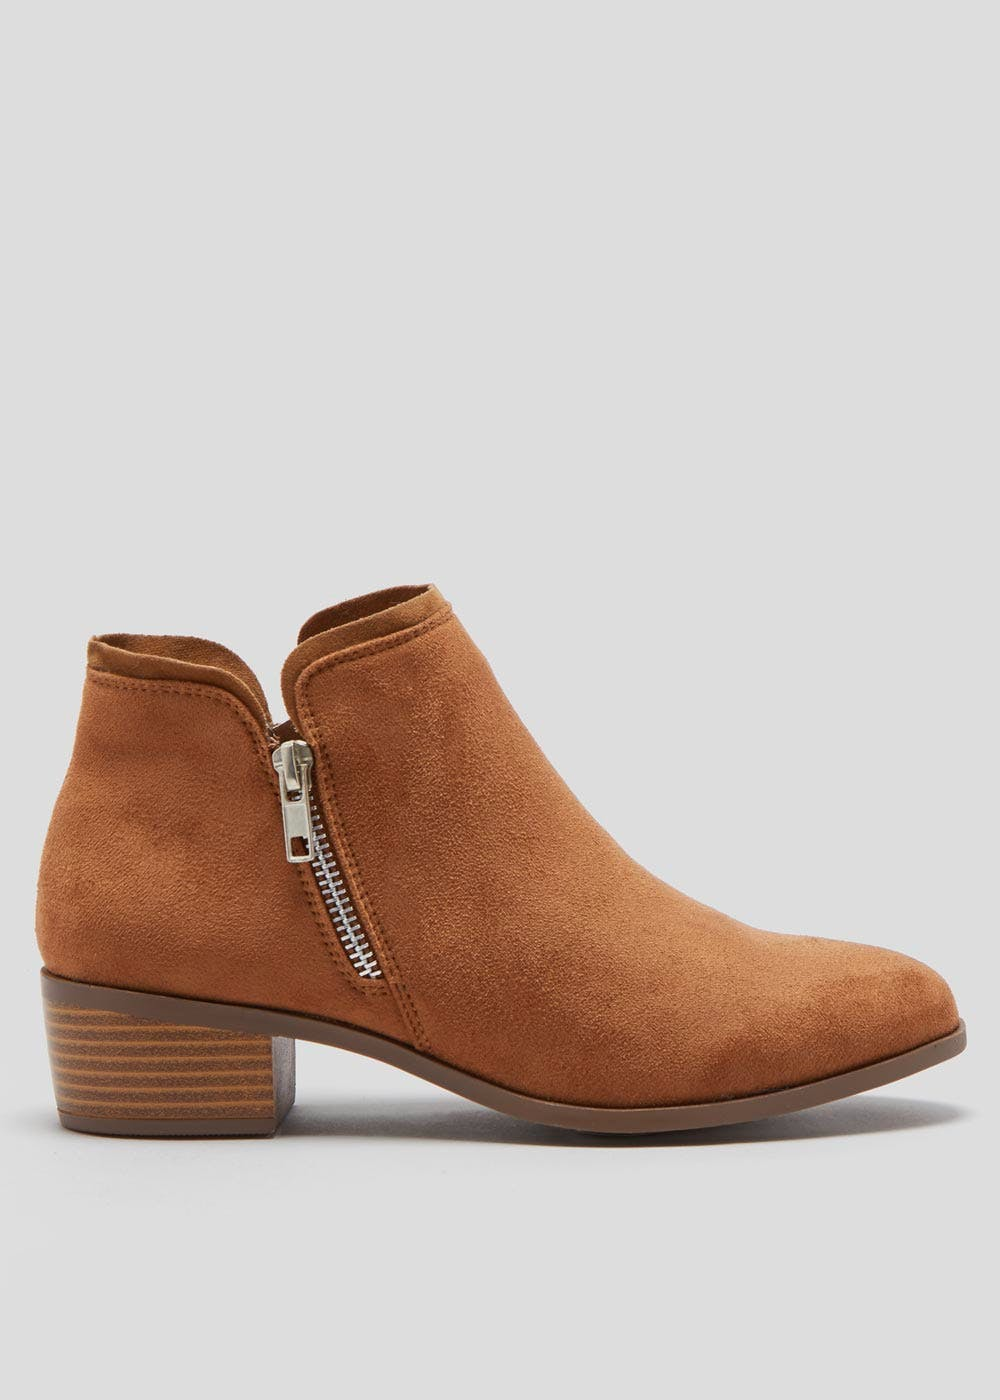 699a0b4f939 Side Zip Western Ankle Boots